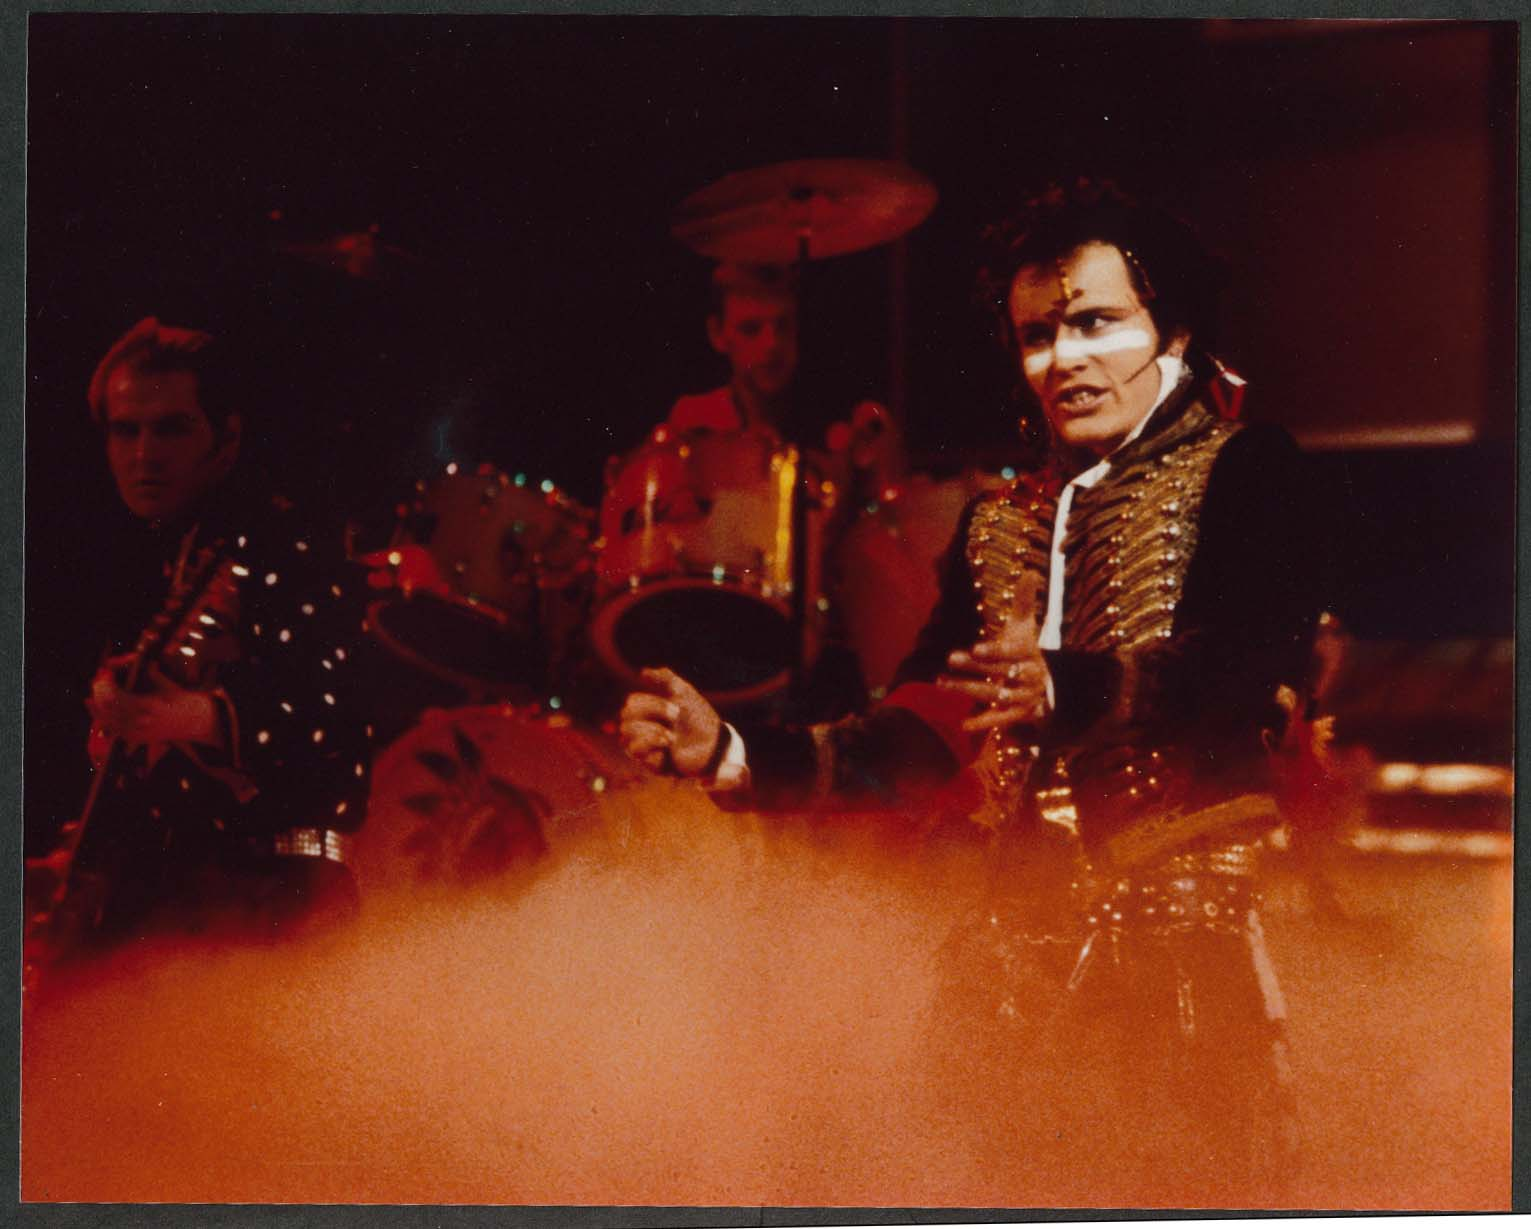 Adam and the Ants performing onstage 8x10 photograph 1980s